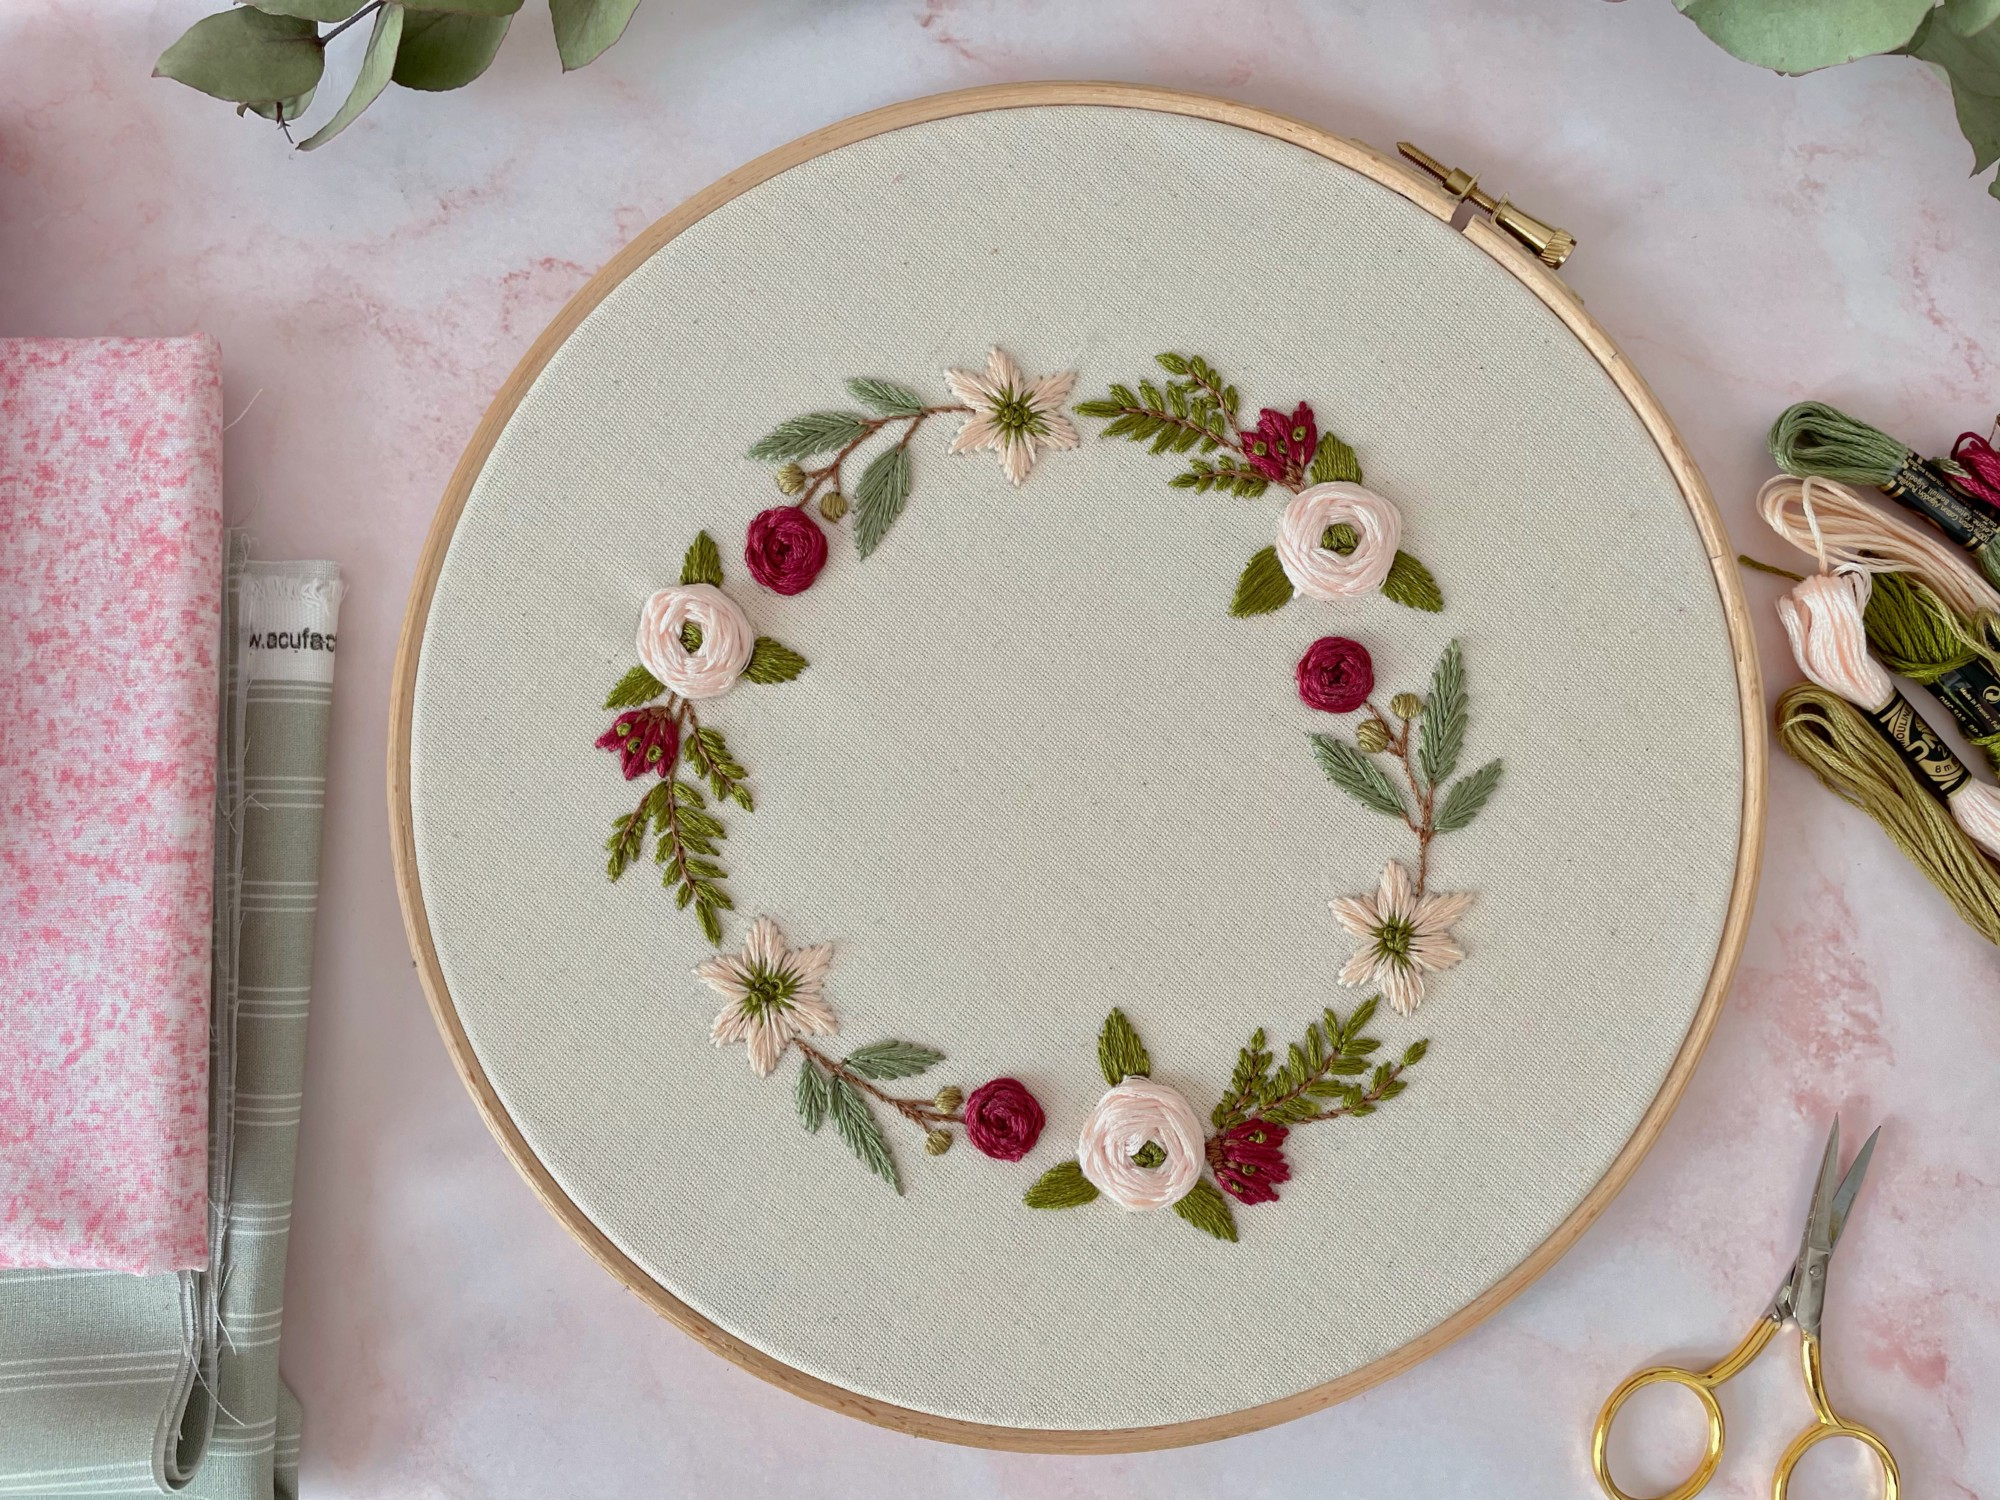 An embroidery hoop with a flower wreath stitched on it, on a pink marble table with embroidery thread next to it.